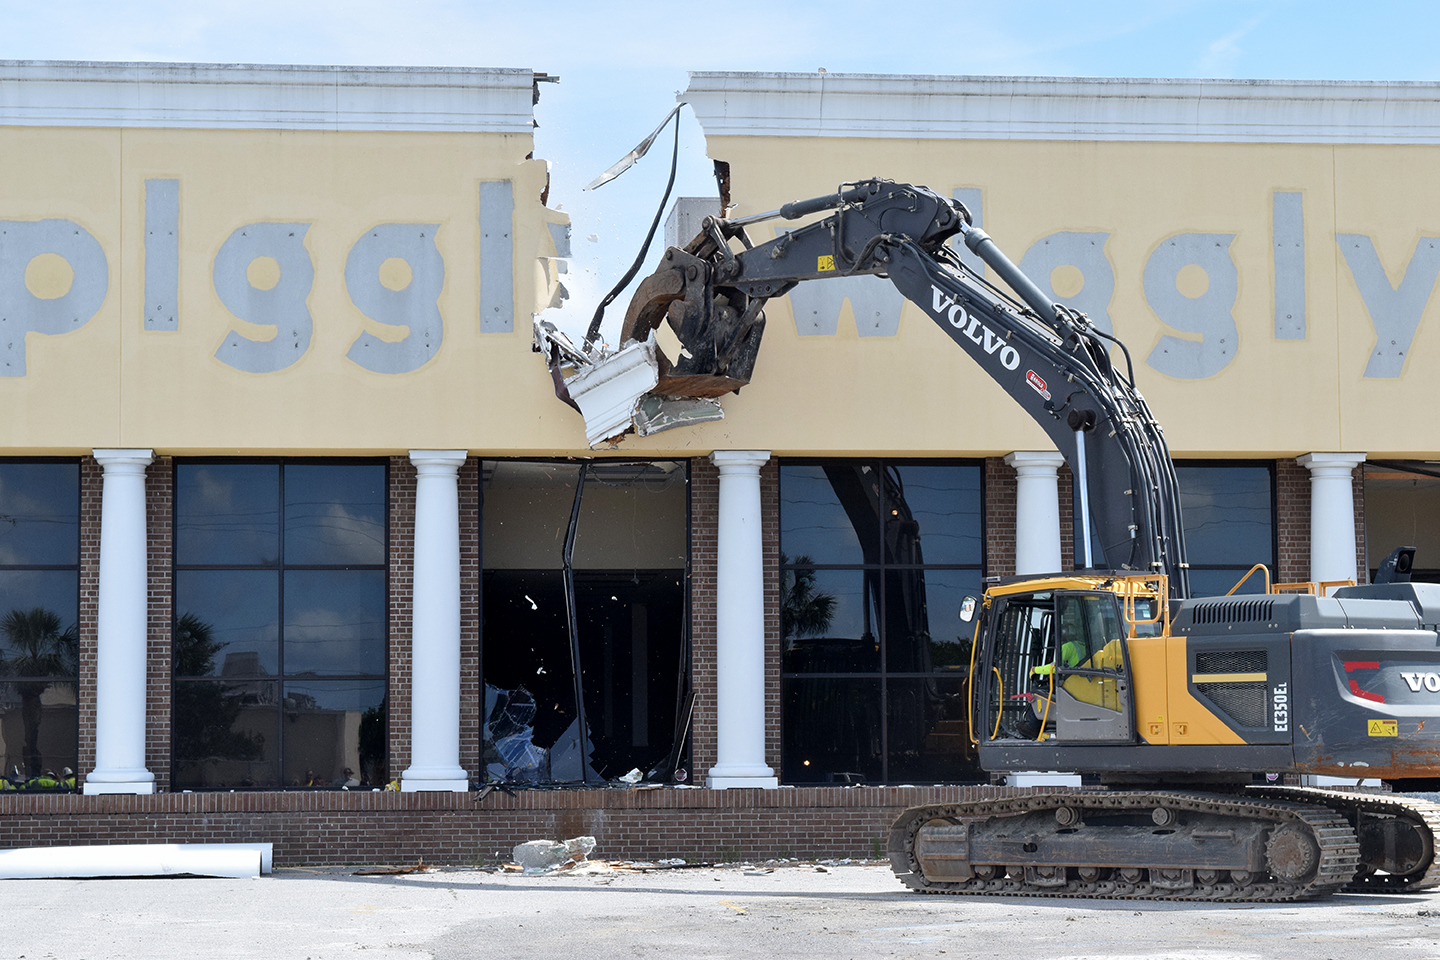 After Mayor Tecklenburg smashed one of the former grocery store's windows, Target Contractors began tearing down the former signage. After the demolition is complete, the city plans to hold public engagement sessions to learn what citizens want to see happen at the site. (Photo/Patrick Hoff)